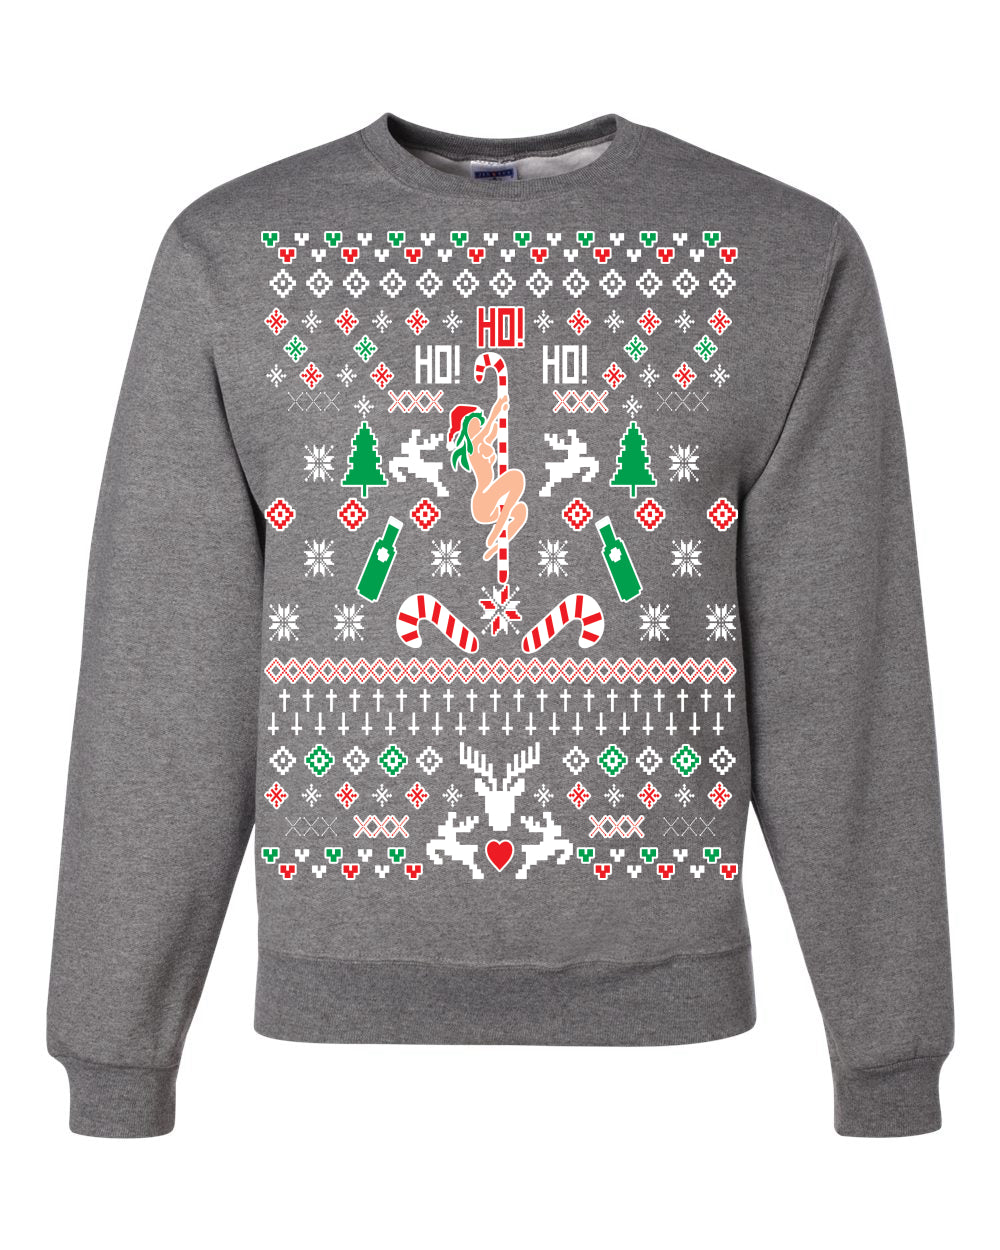 Ho Ho Ho Stripper Christmas Unisex Crewneck Graphic Sweatshirt